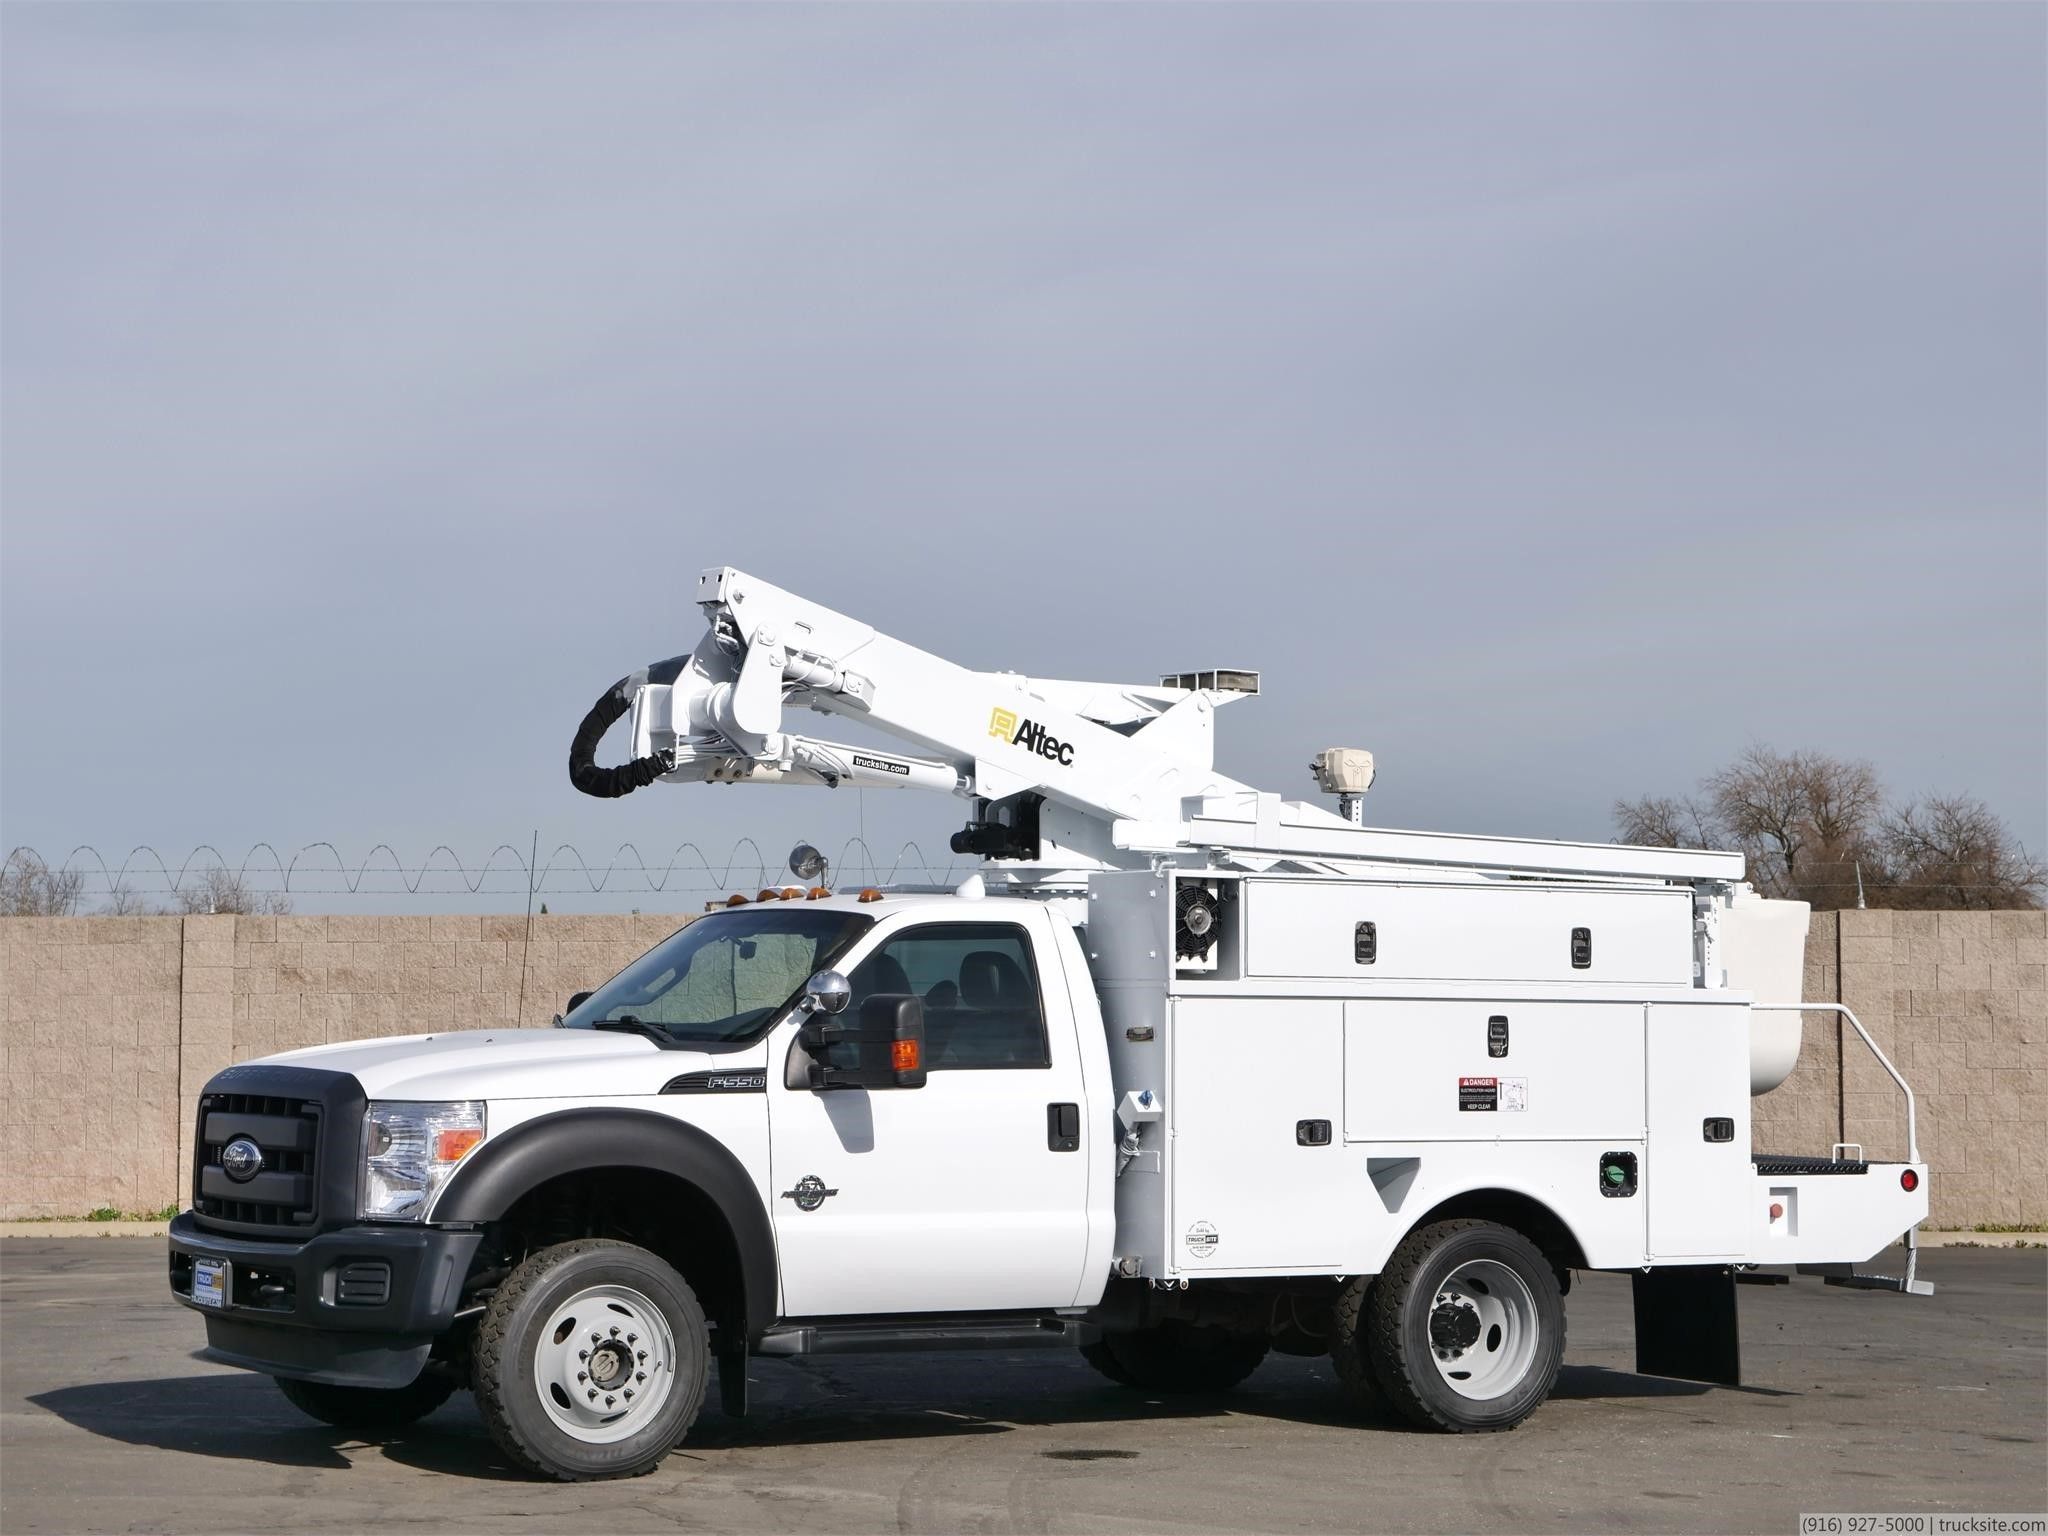 View 2011 ALTEC AT37G - Listing #1611685